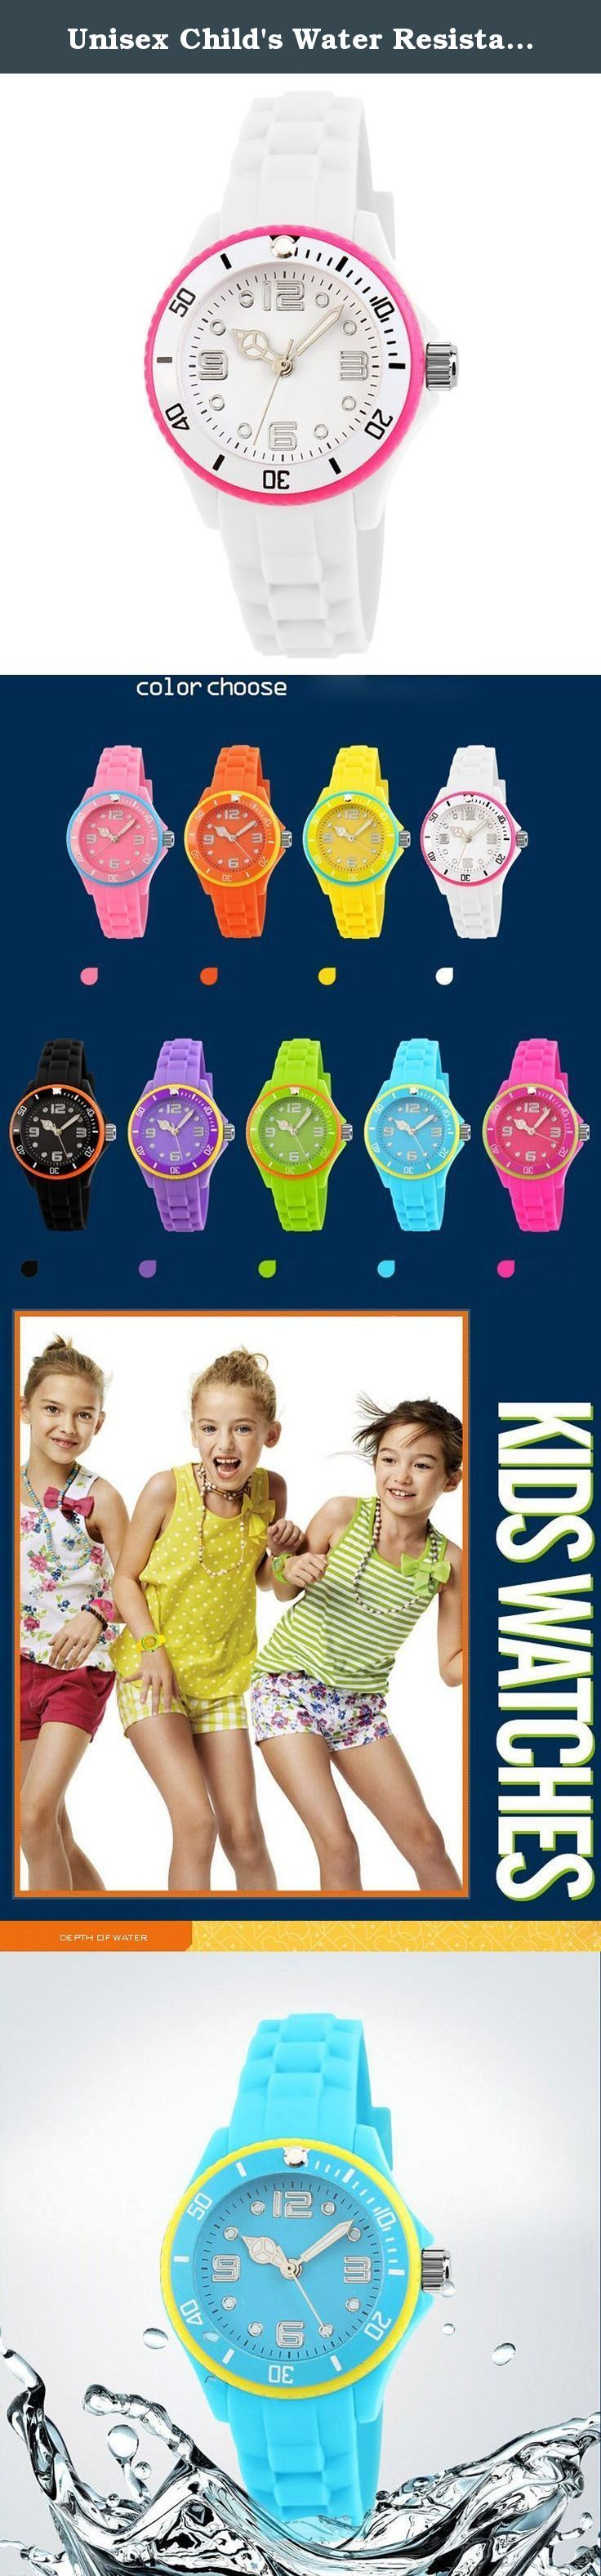 Unisex Child's Water Resistant Watches Boys and Girls Quartz Watch Students Outdoor Sports Watch Christmas Gift Watch (White). A variety of styles you can choose in our store ! Package Included: 1 x Watch Please Note: 1. Actual color may vary from picture due to computer settings. 2. Find store front of Sunny world, more surprises are waiting for you! Dear Buyer, Thanks for your continuous support to our store, and we are always striving to improve ourselves in terms of service, quality...